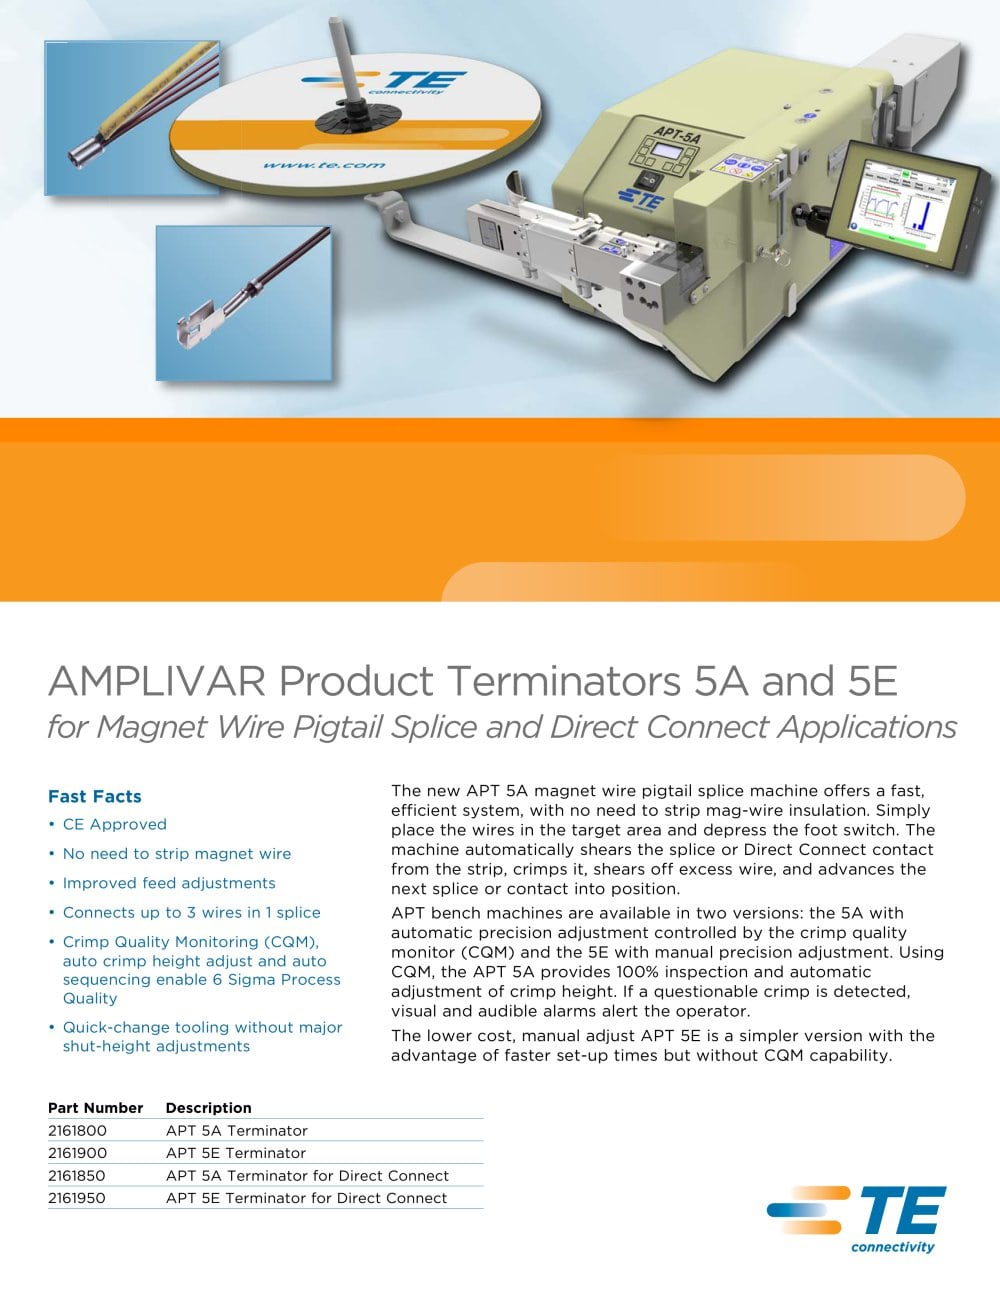 AMPLIVAR Product Terminators 5A and 5E - TE Connectivity - Magnet ...